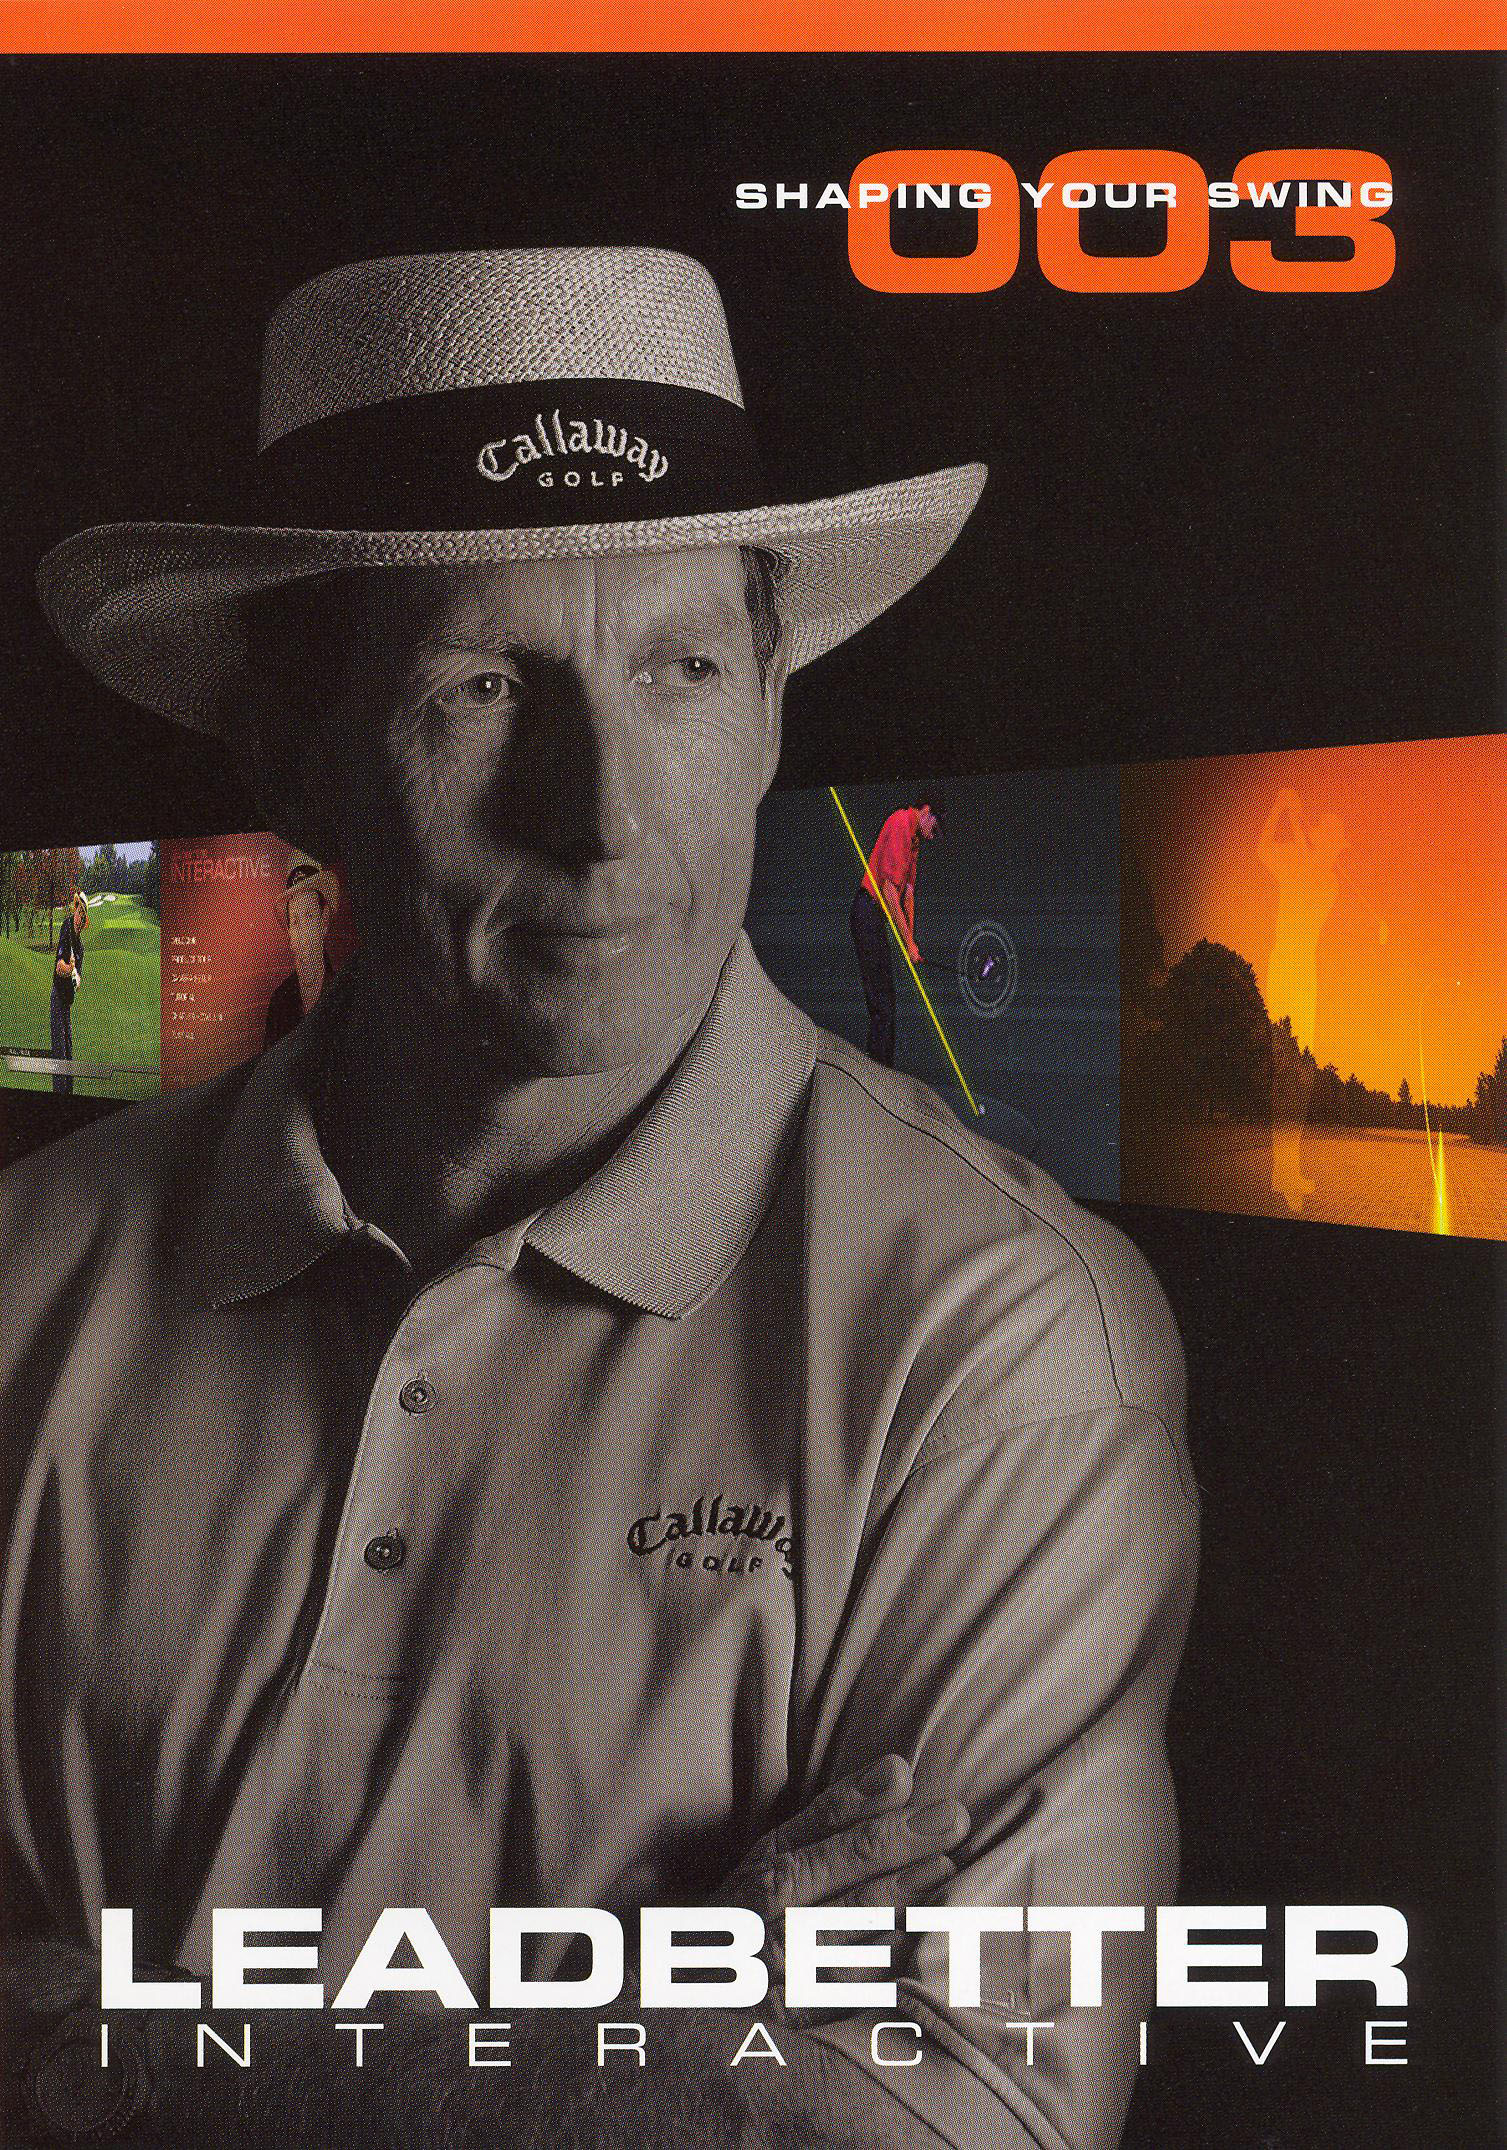 Leadbetter Interactive, Vol. 3: Shaping Your Swing